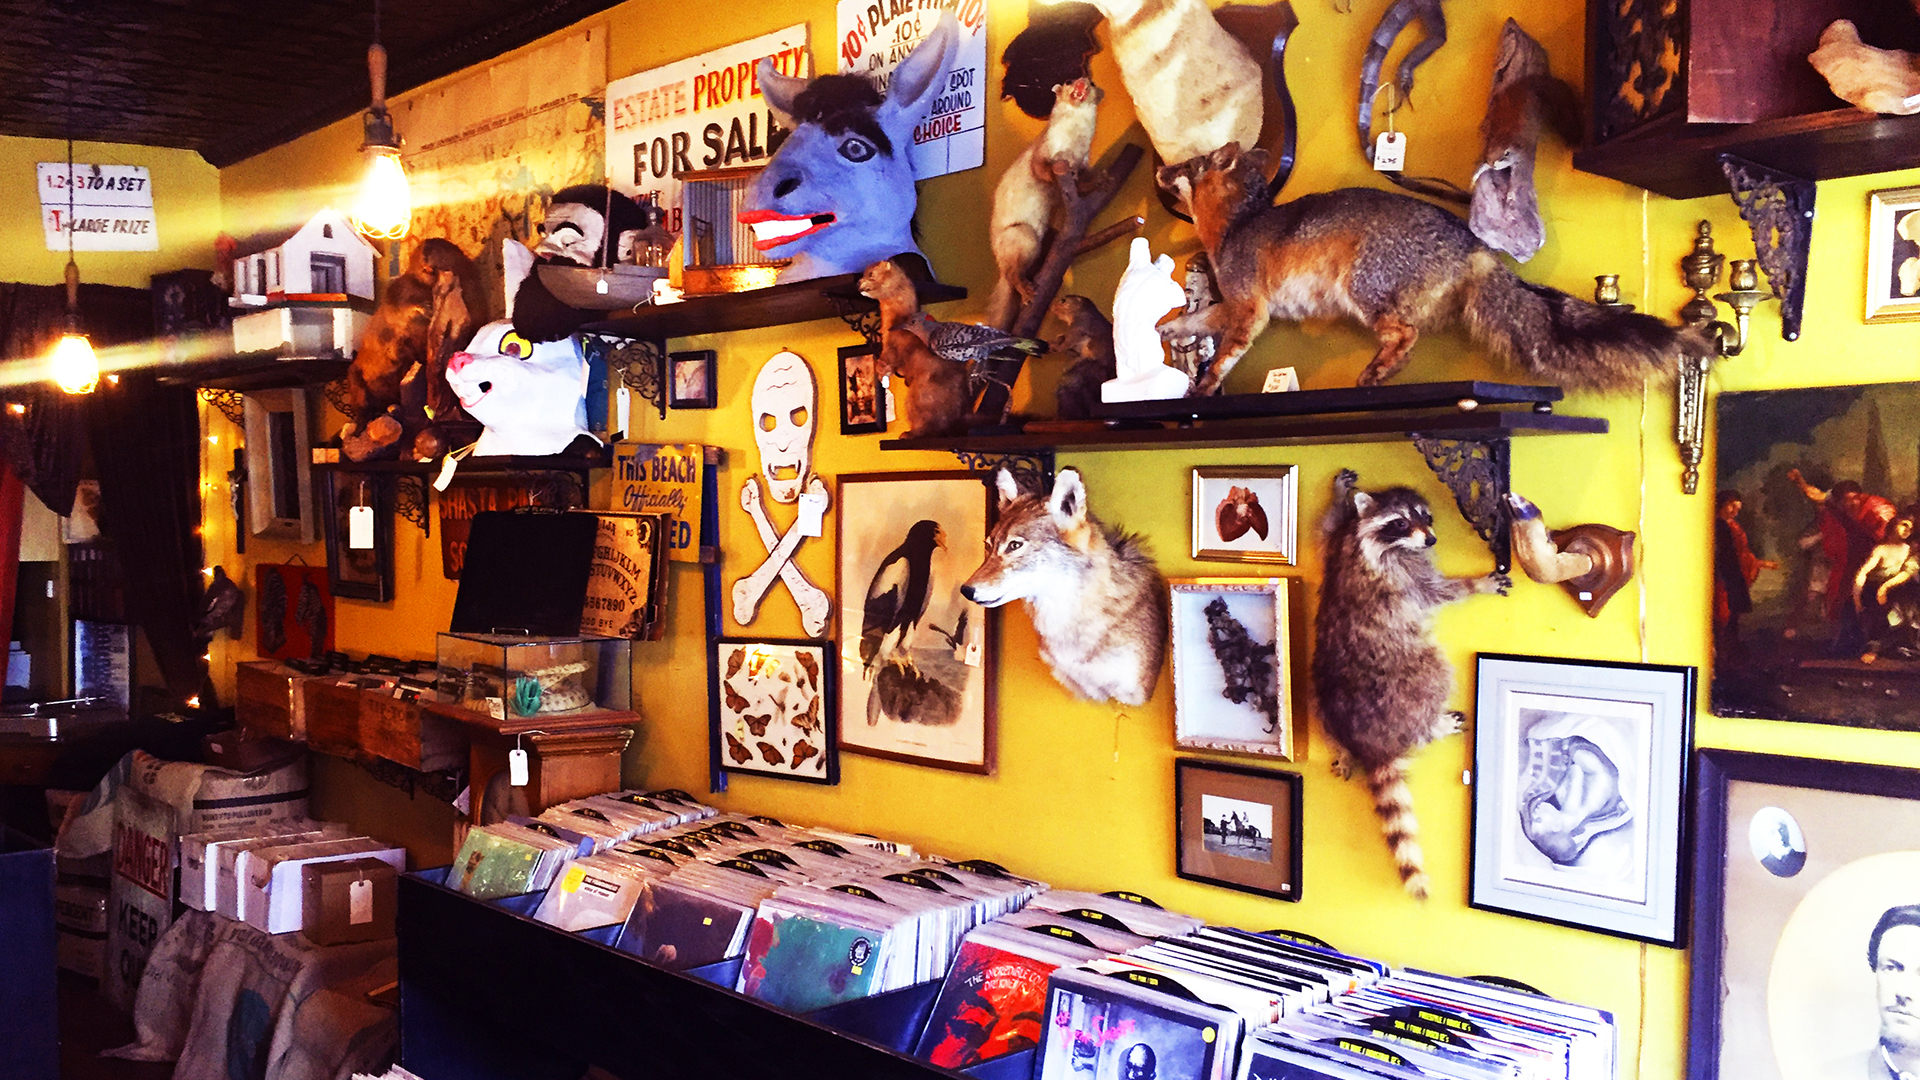 Stuffed animal heads and other body parts adorn a wall above shelves of used records at Black Gold Records in New York City